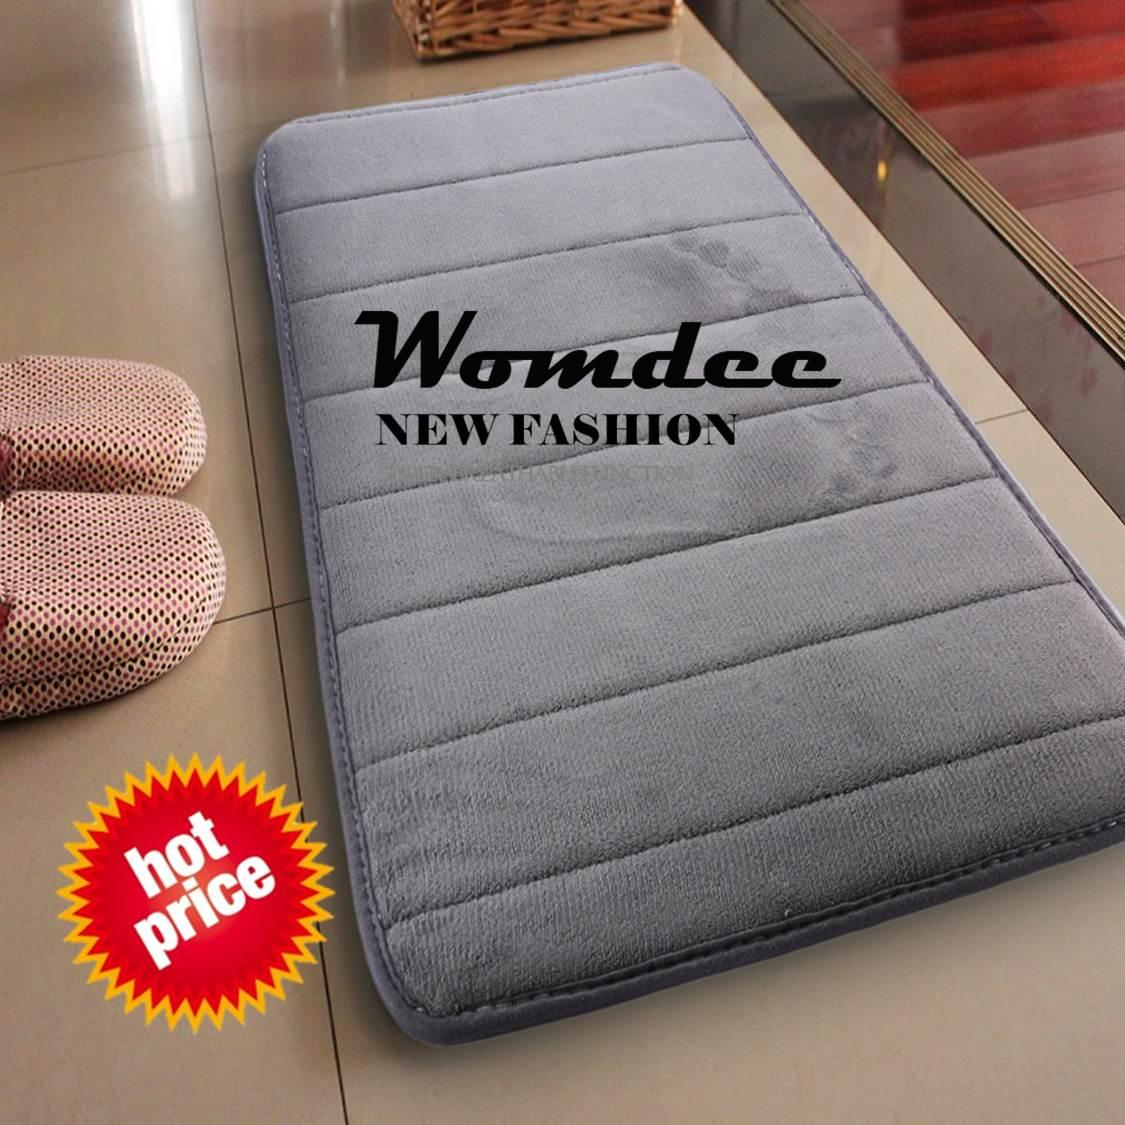 Womdee Water Absorbent Non Skid Memory Foam Bath Spa Rug Shower Mat Carpet (gray) - Intl By Womdee.